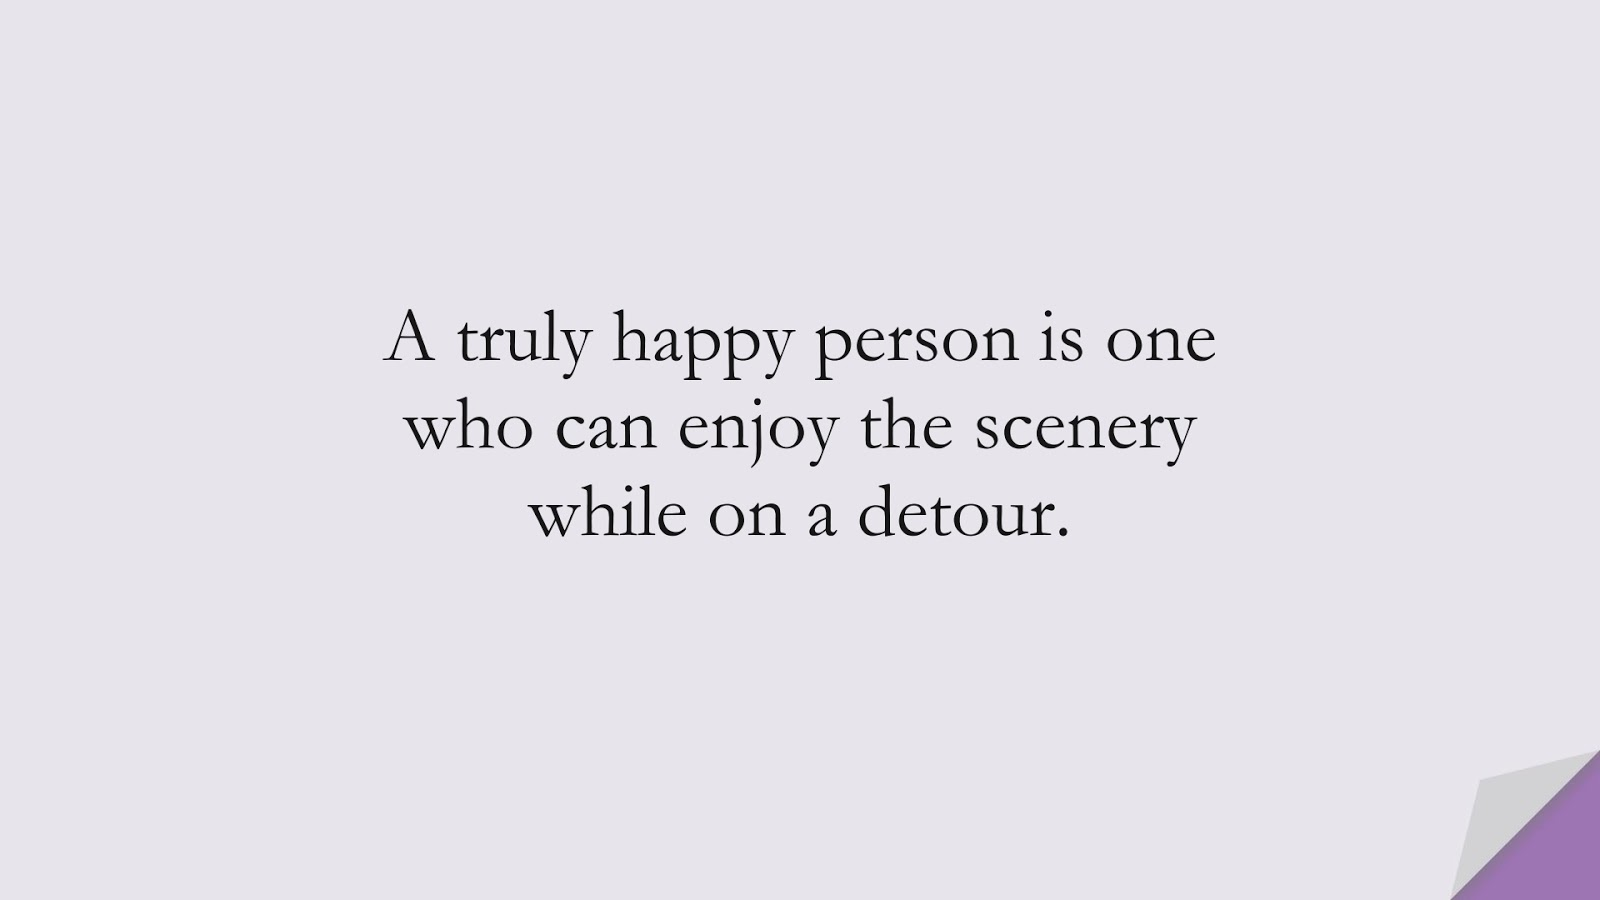 A truly happy person is one who can enjoy the scenery while on a detour.FALSE